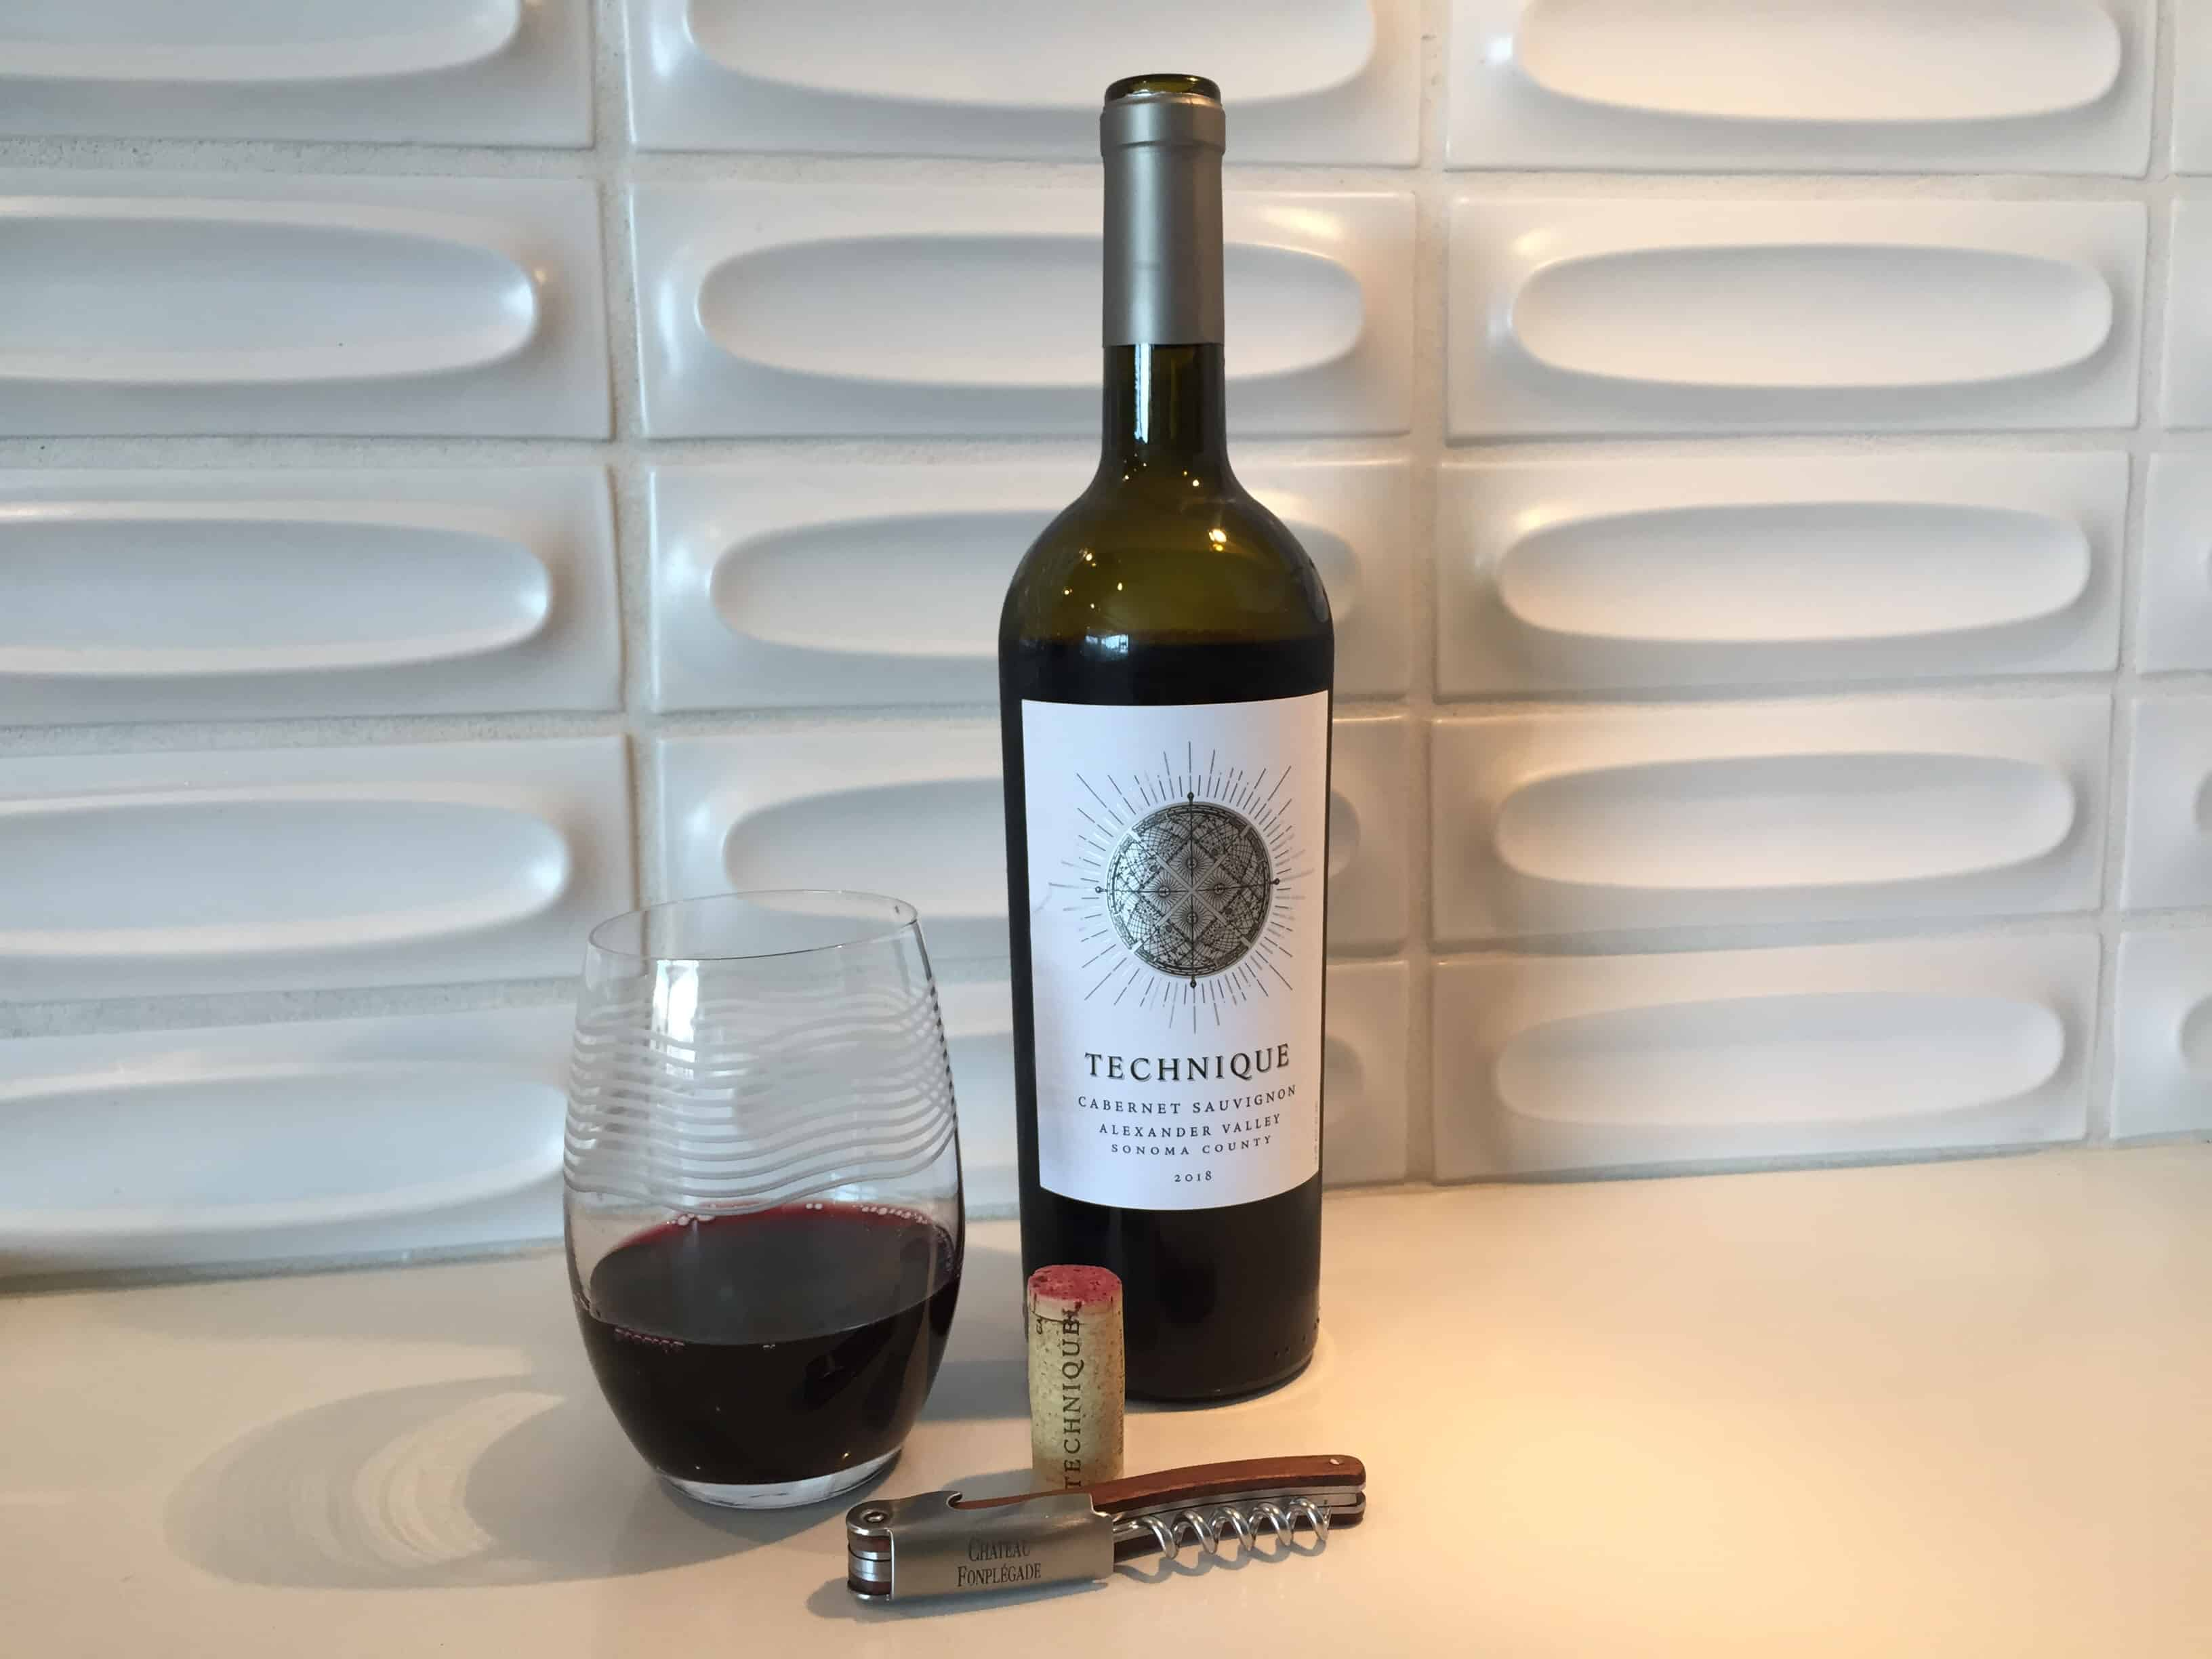 Bottle and glass of Technique 2018 Cabernet Sauvignon from Trader Joe's